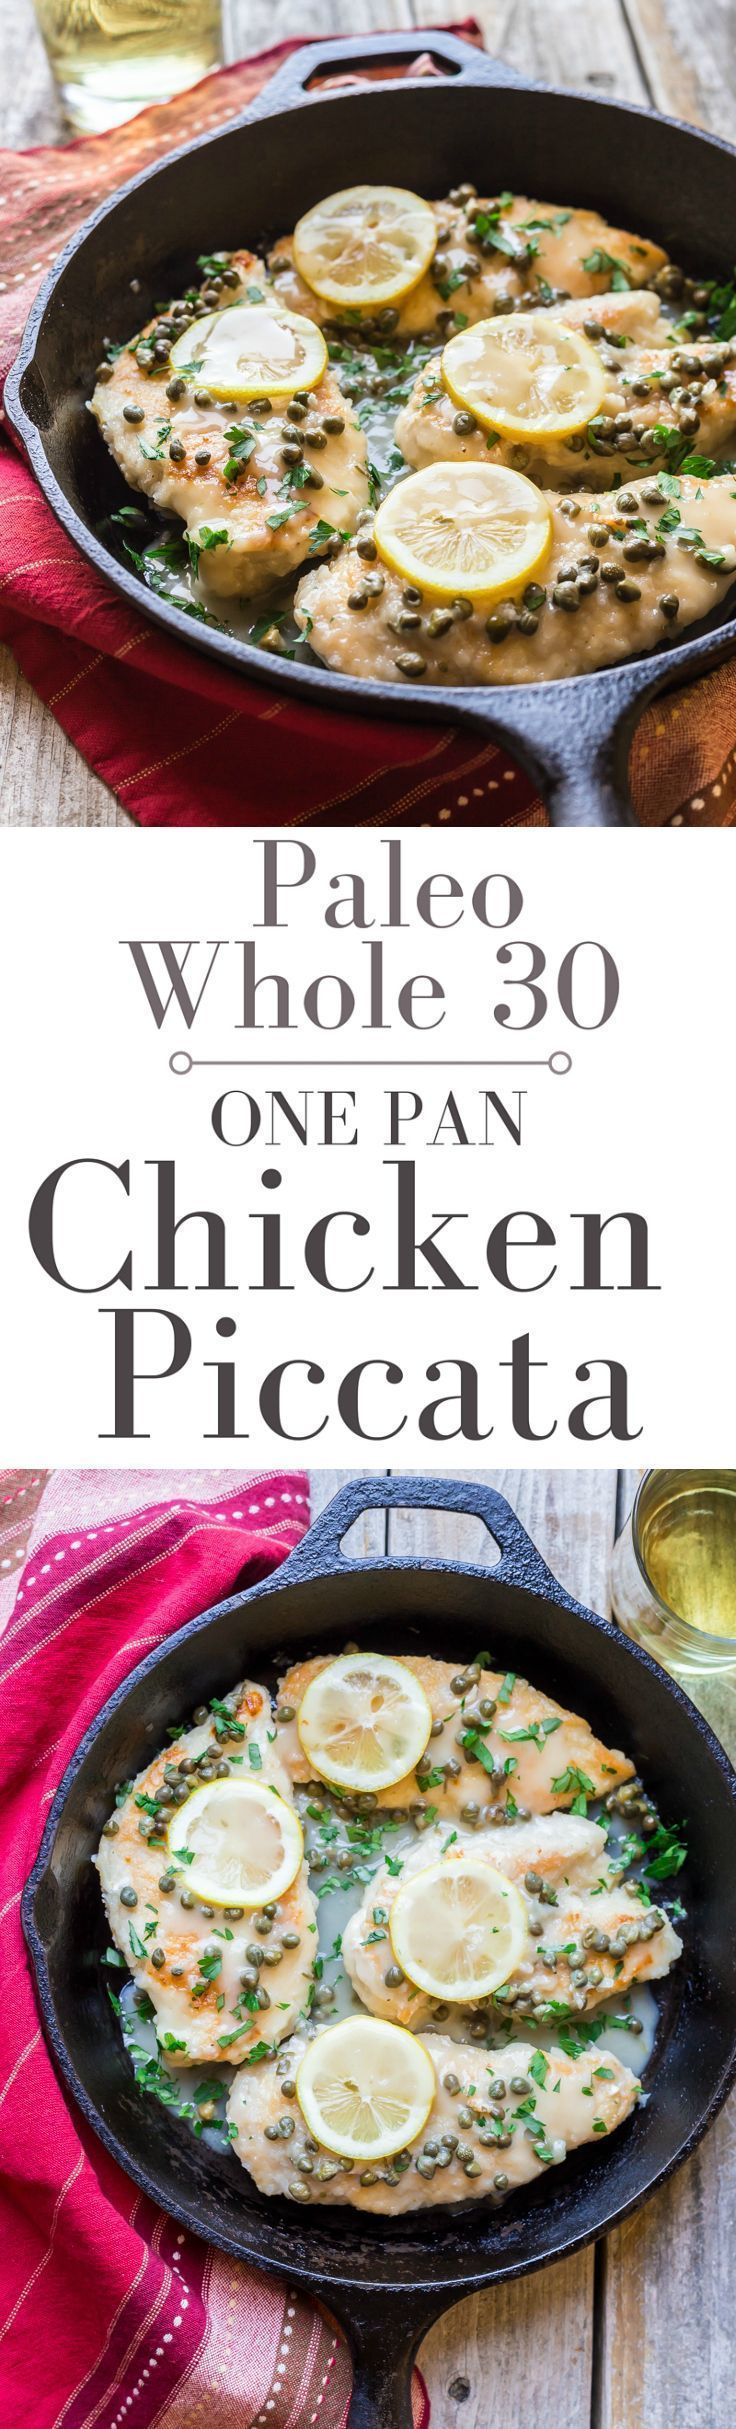 58 best PALEO SEAFOOD RECIPES images on Pinterest   Seafood recipes ...